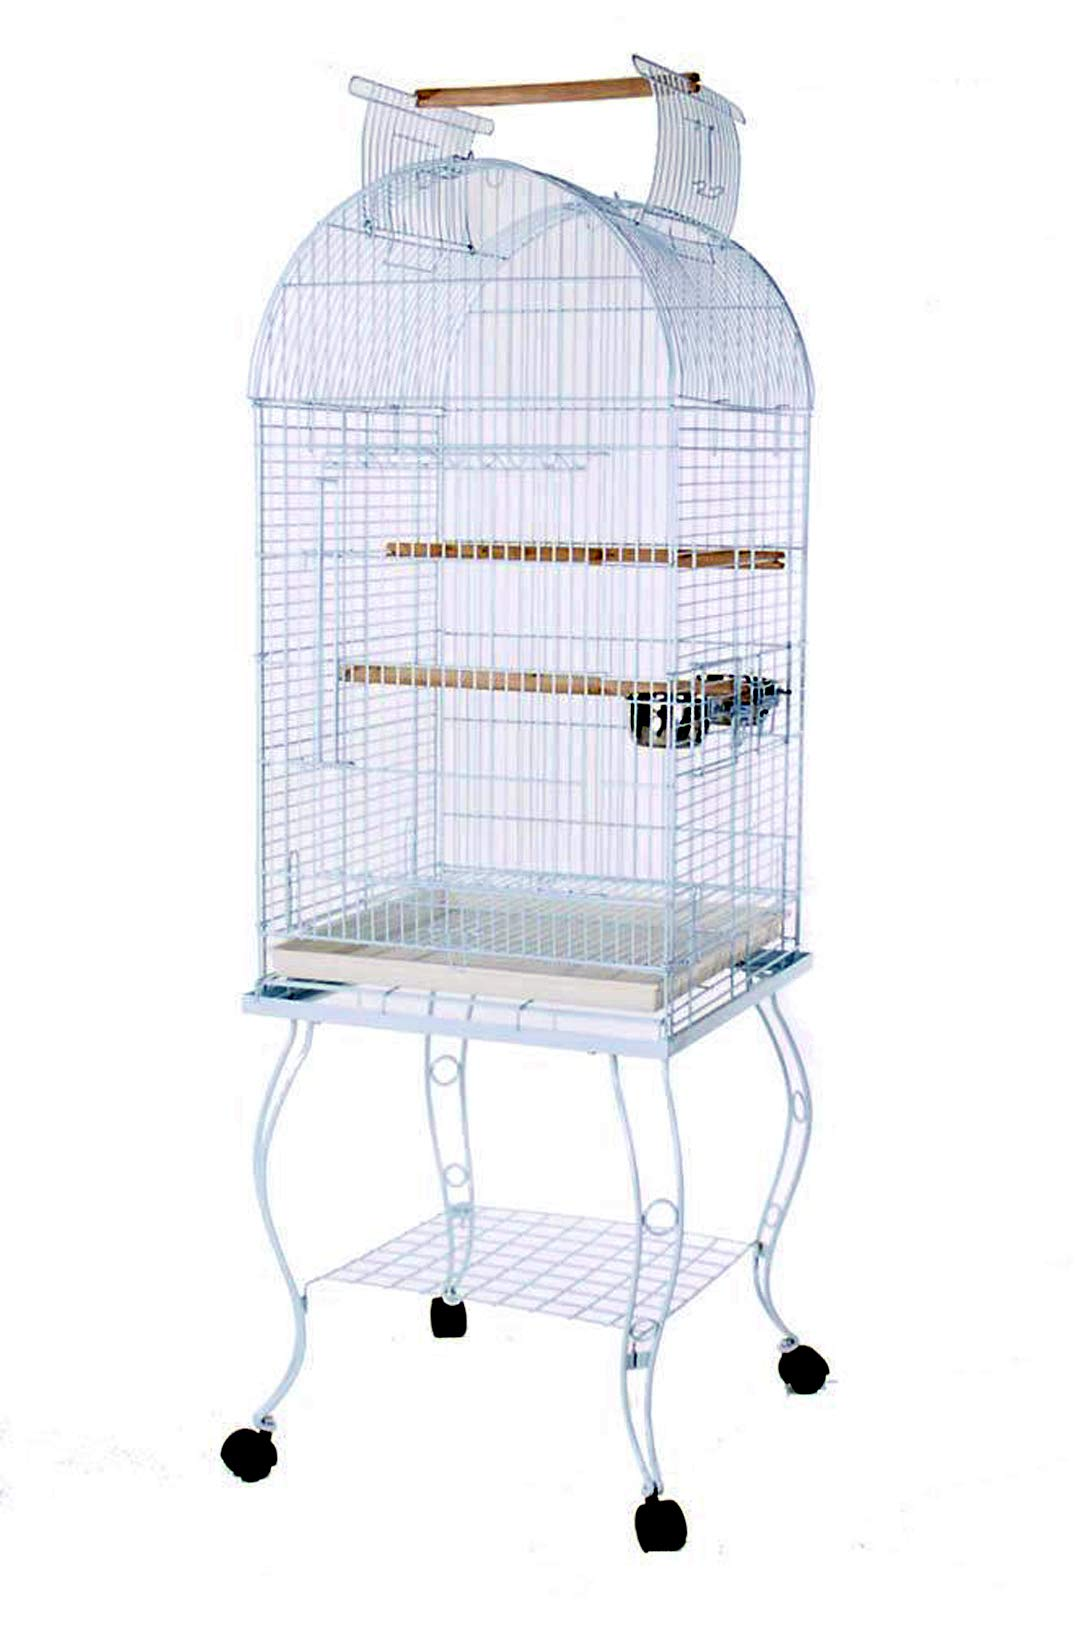 PetcageMart Metal Playtop Parrot Bird Cage with Stand, 20 by 20 by 65-Inch, White by PetcageMart